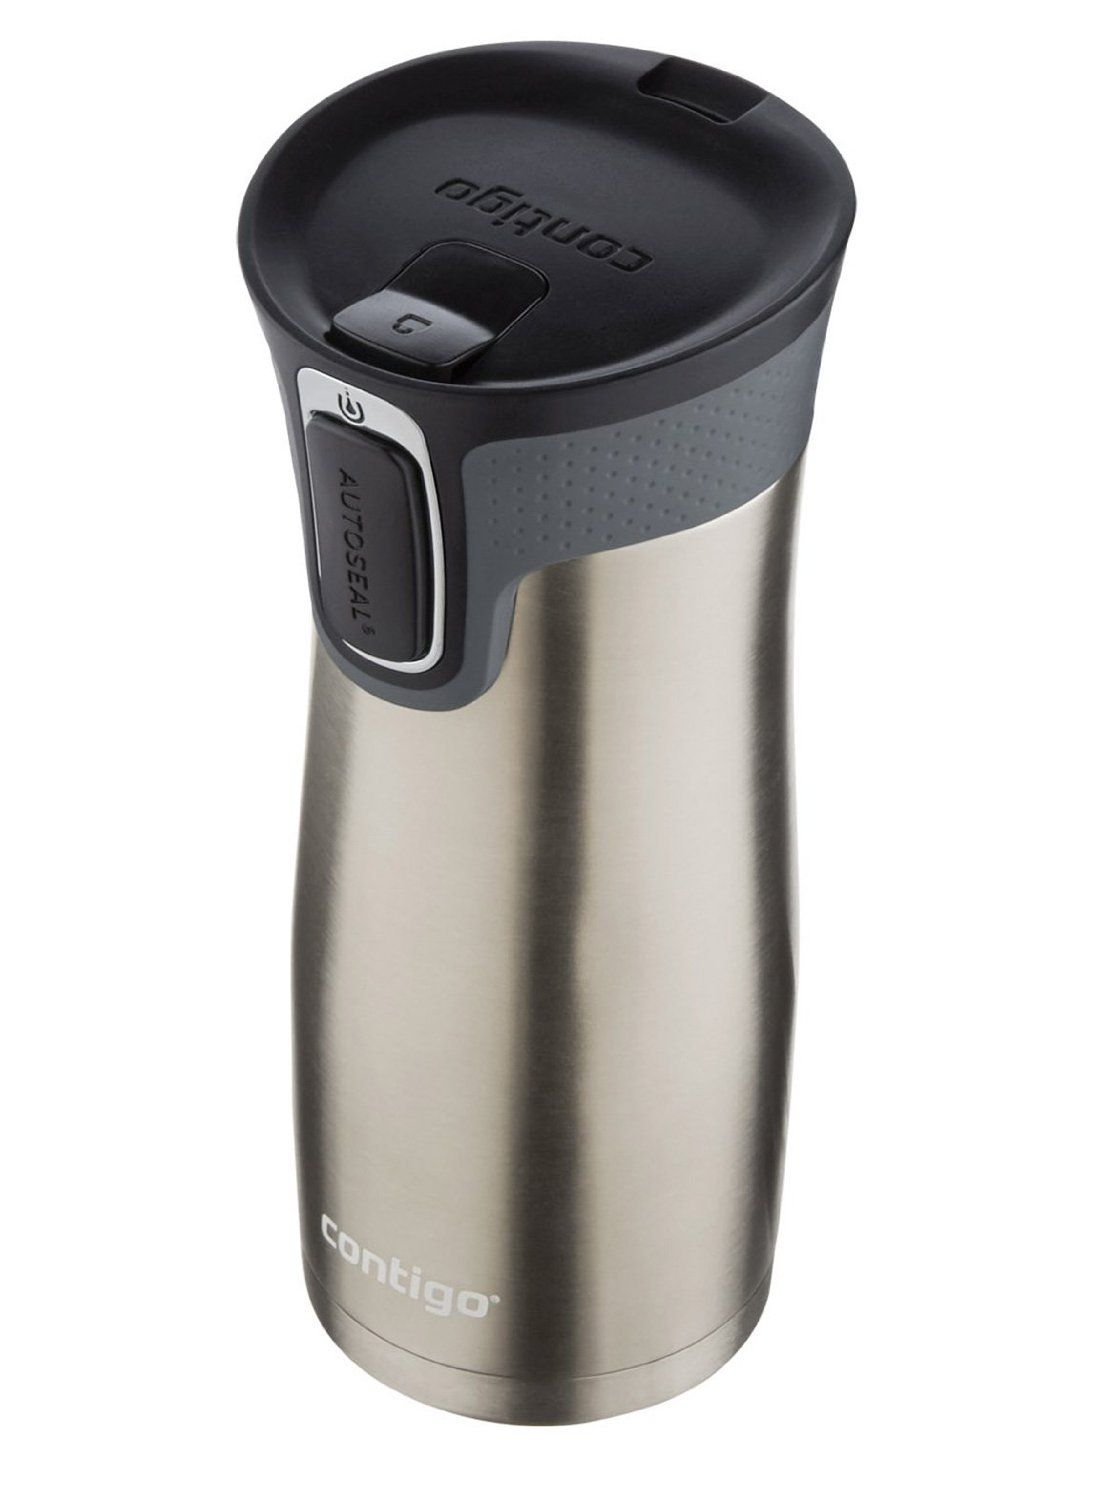 Amazon|Contigo Autoseal West Loop Stainless Steel Travel Mug with Easy Clean…